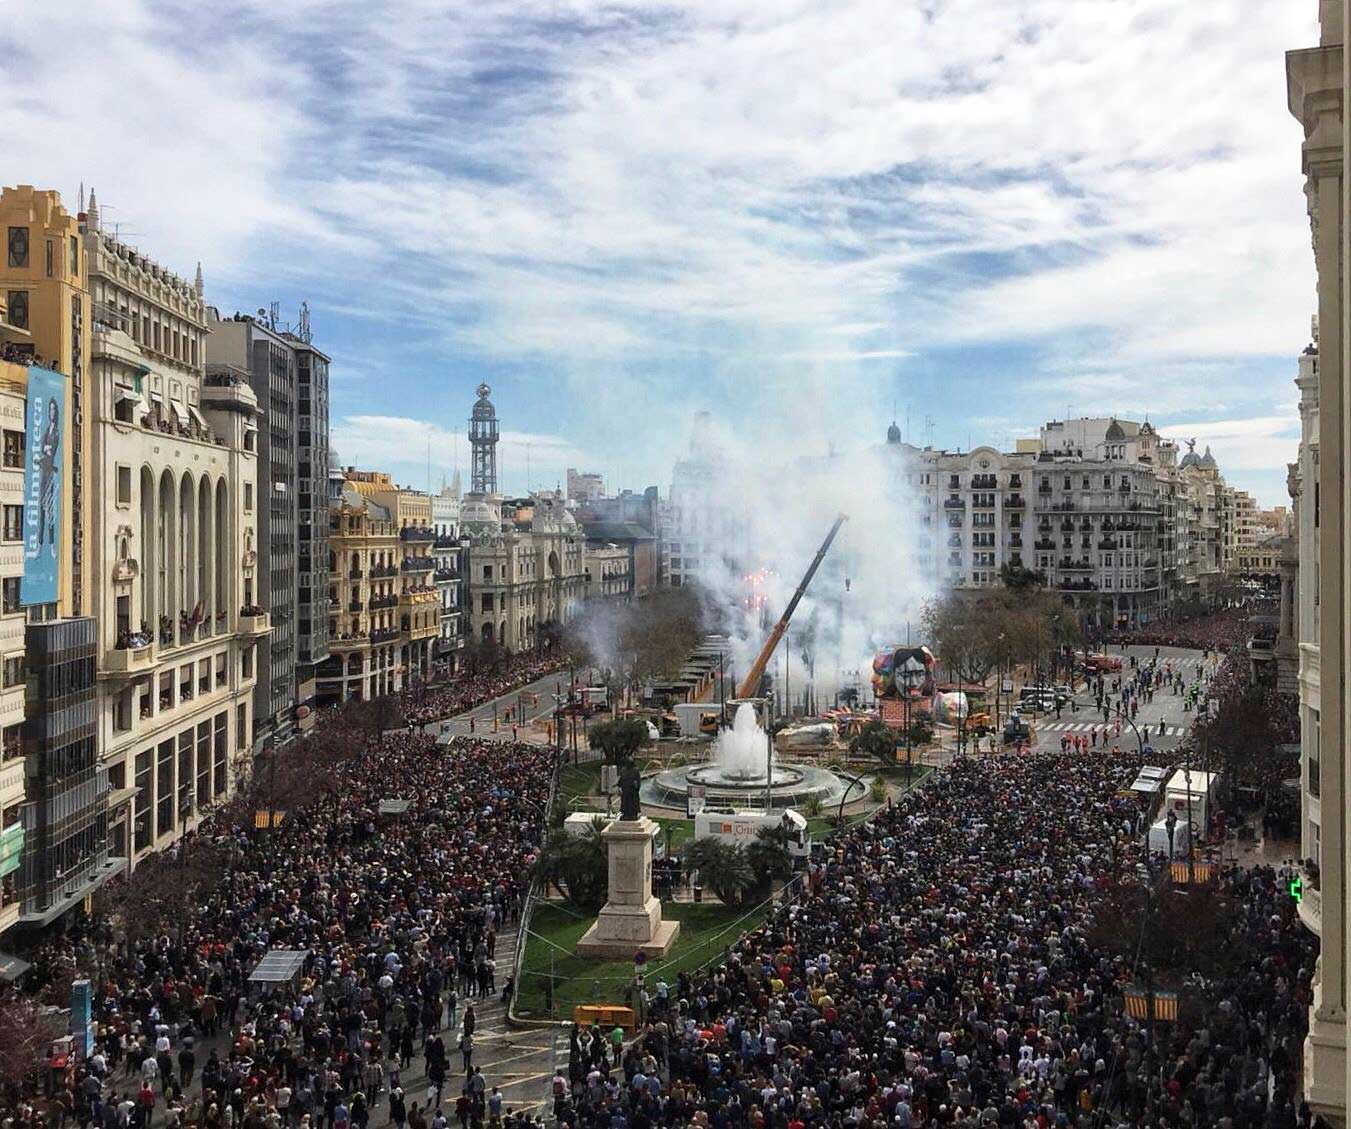 crowd at fallas valencia spain 2018